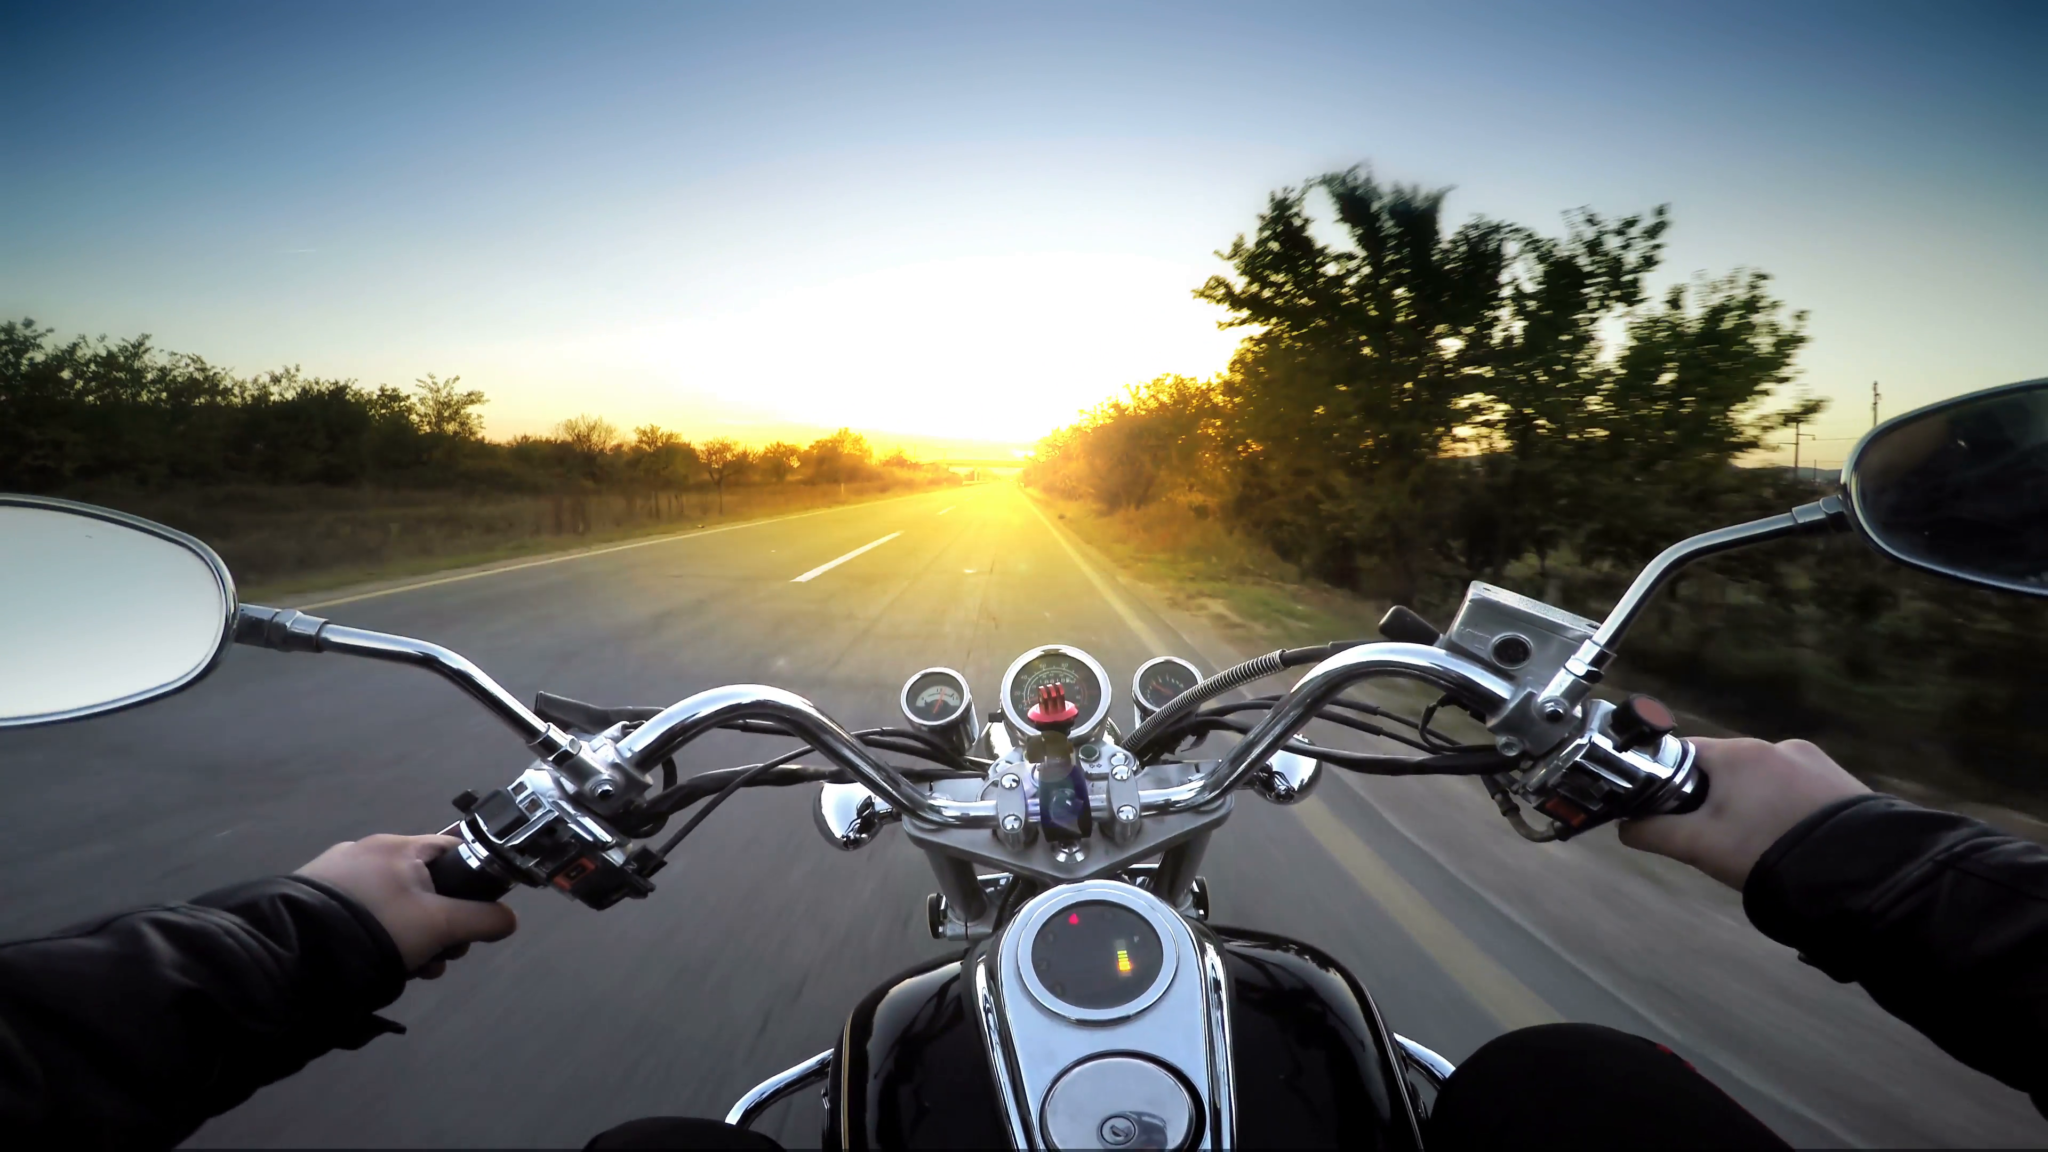 Sapulpa Motorcycle Accident Lawyer